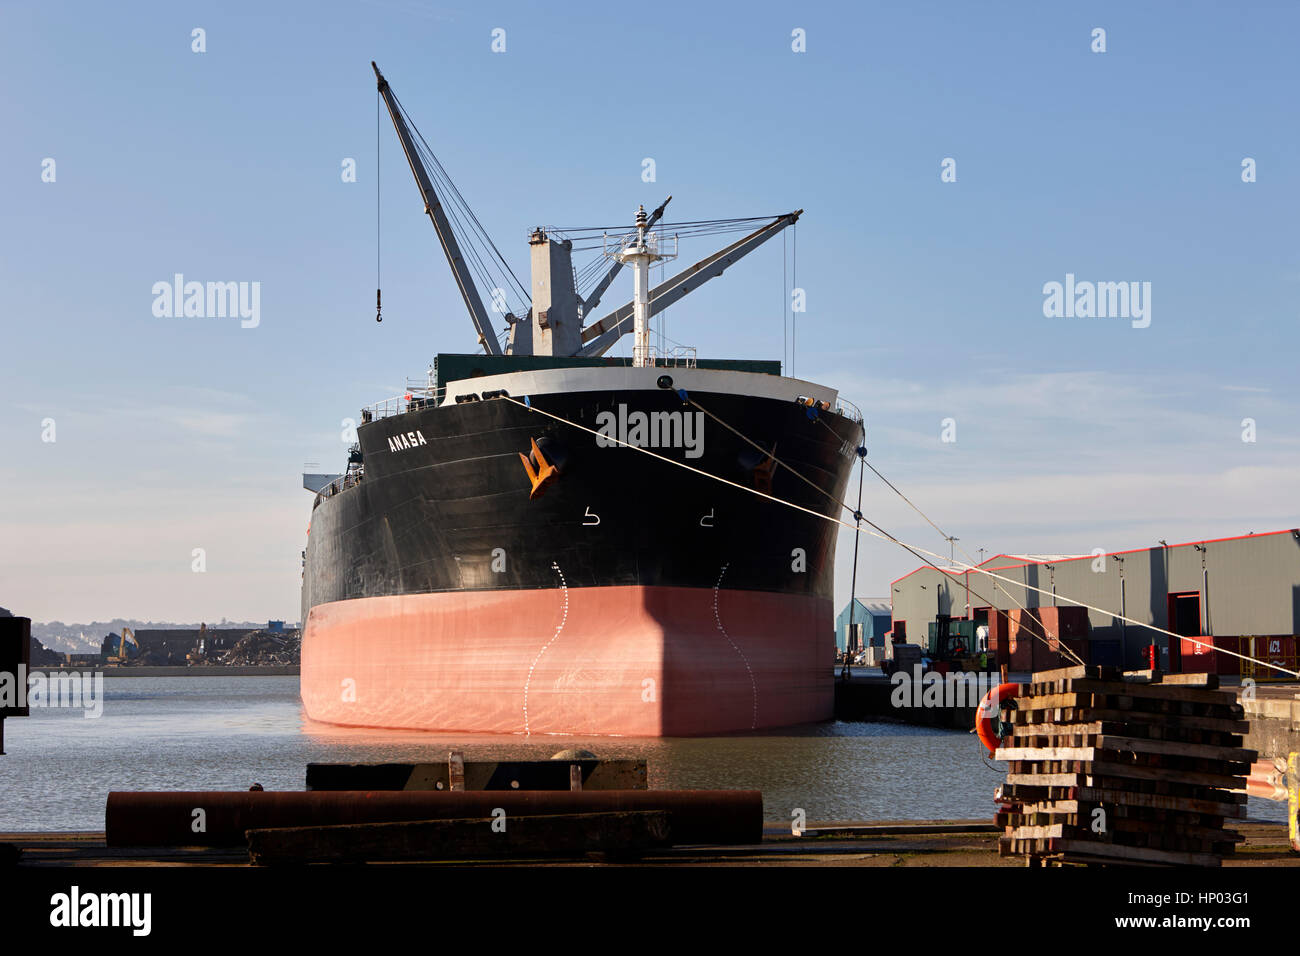 anasa bulk carrier ship high in the water berthed at Canada dock liverpool uk - Stock Image